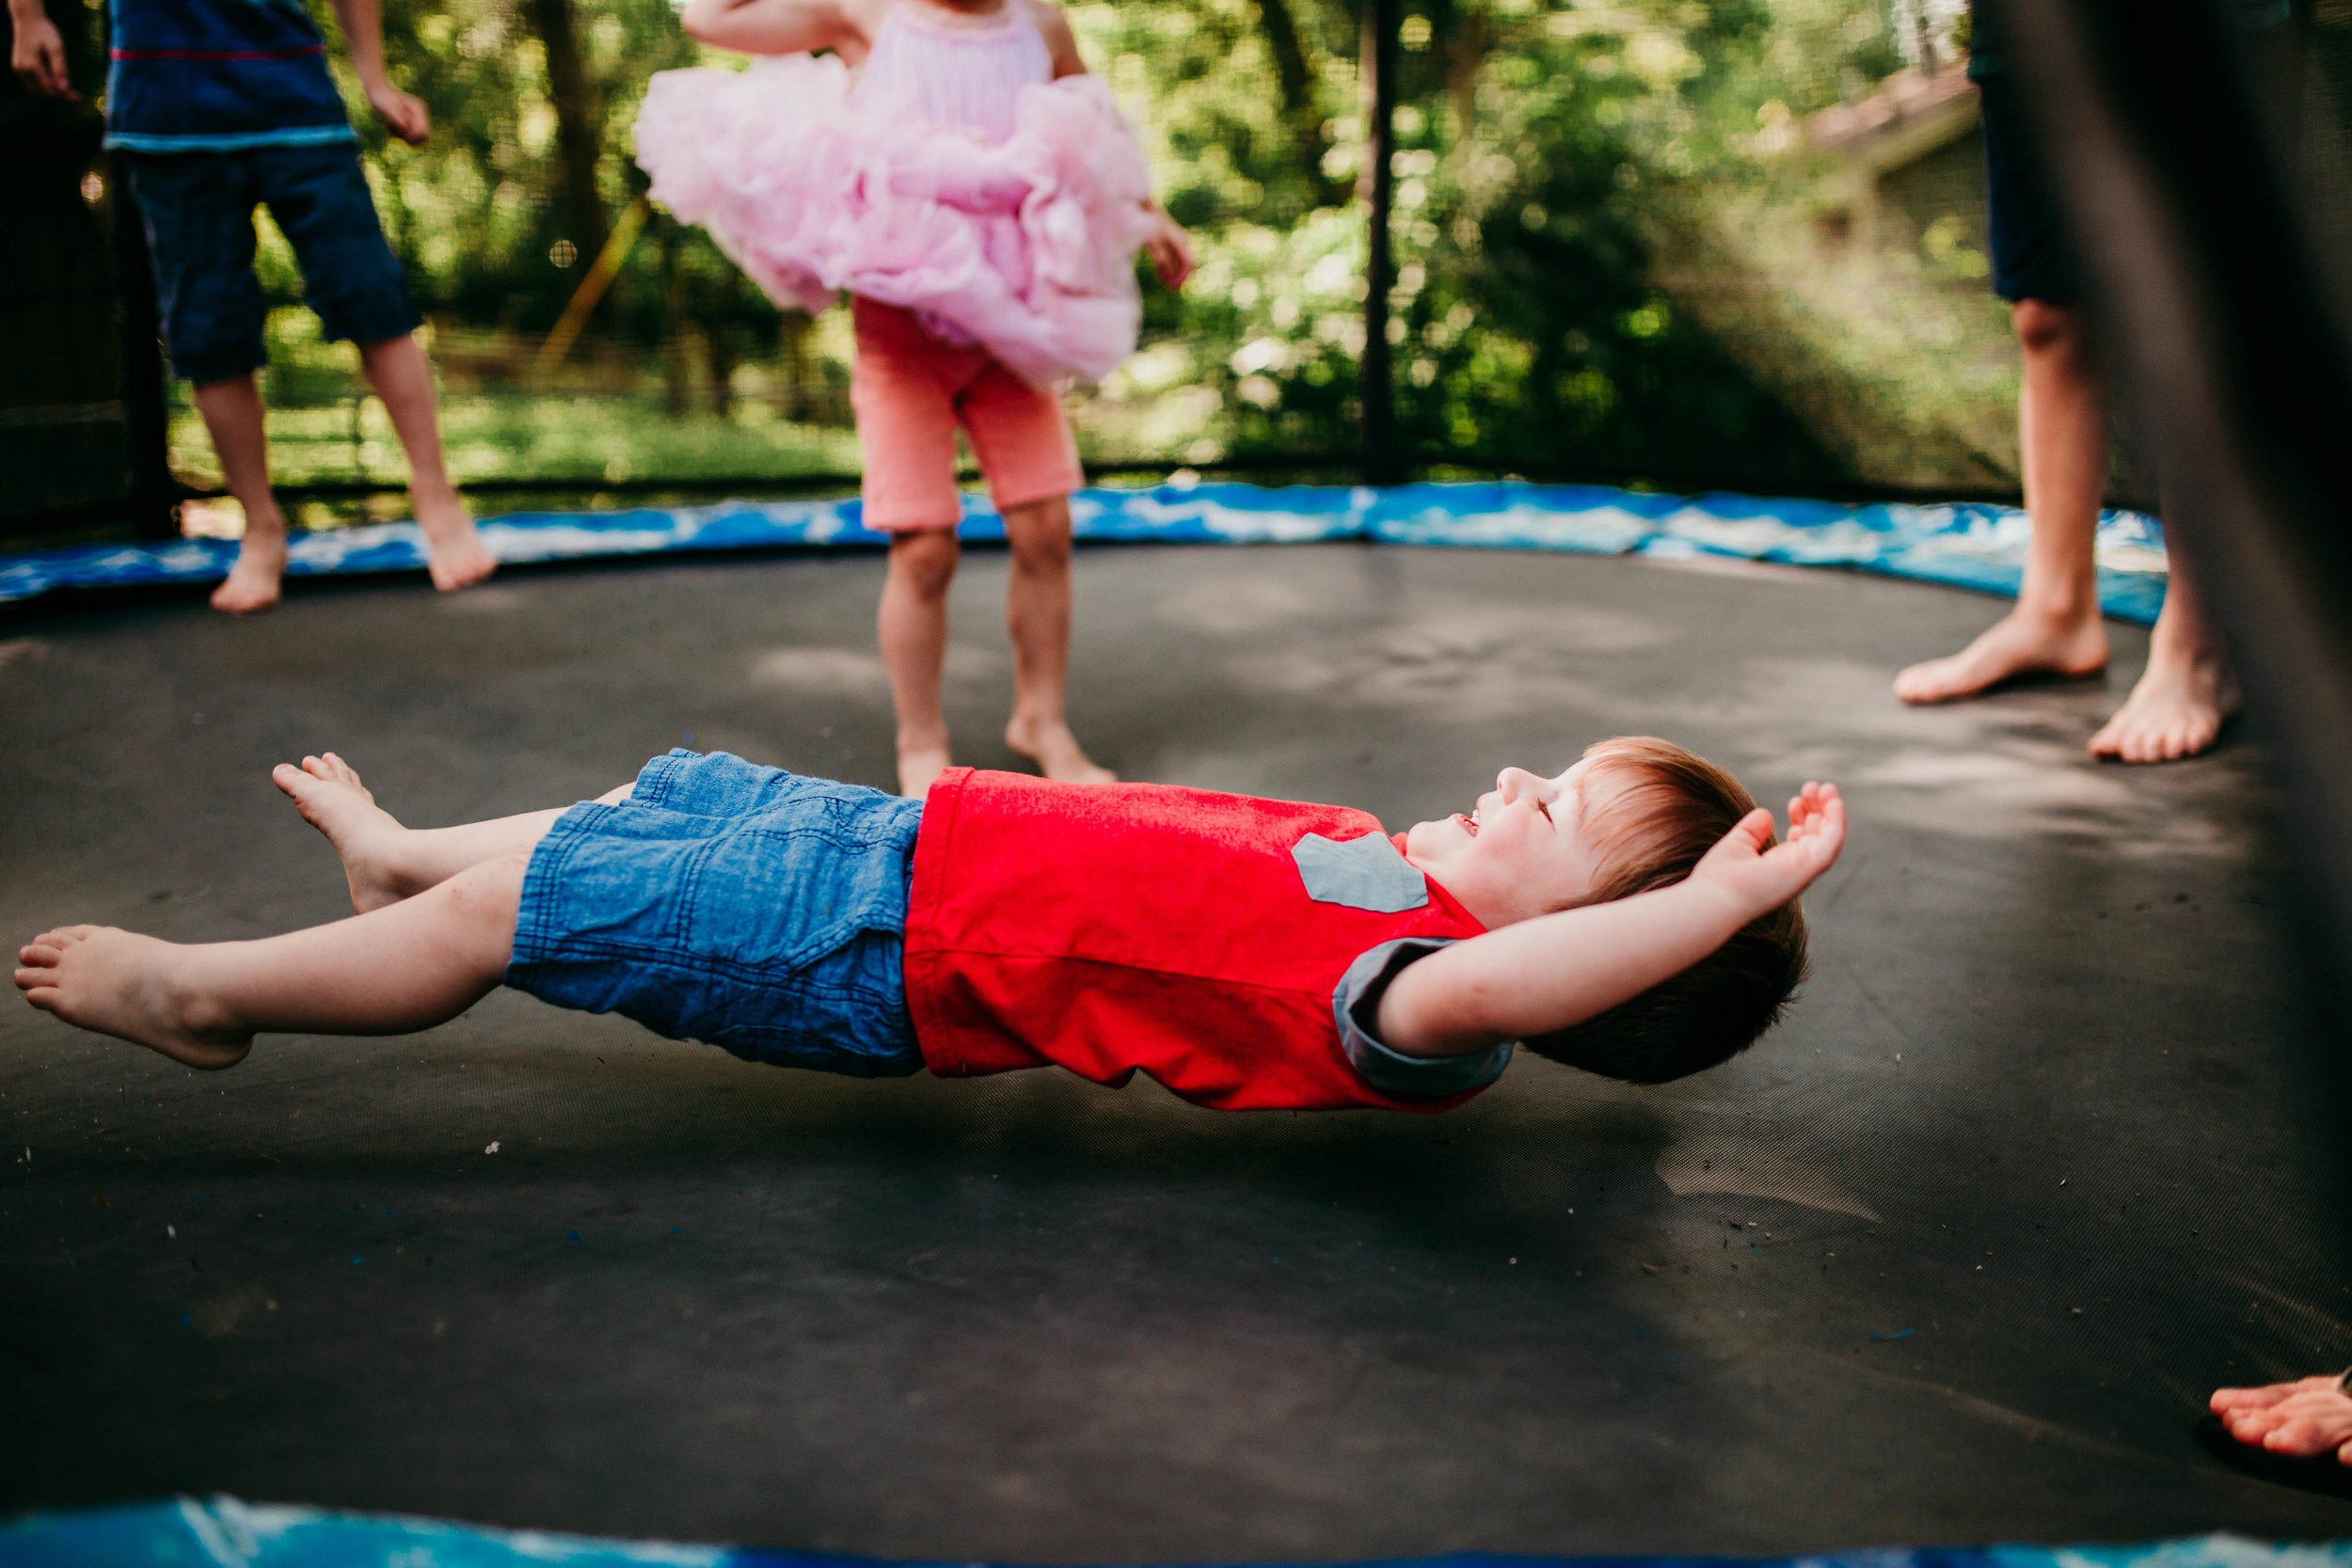 The littlest son getting bounced on the trampoline.   The Carter Family : Summer in the Backyard | Hannahill Photography | Kansas City, MO | Family photography lifestyle photographer | Wedding photographer Durham North Carolina Raleigh | Birth photographer Documentary